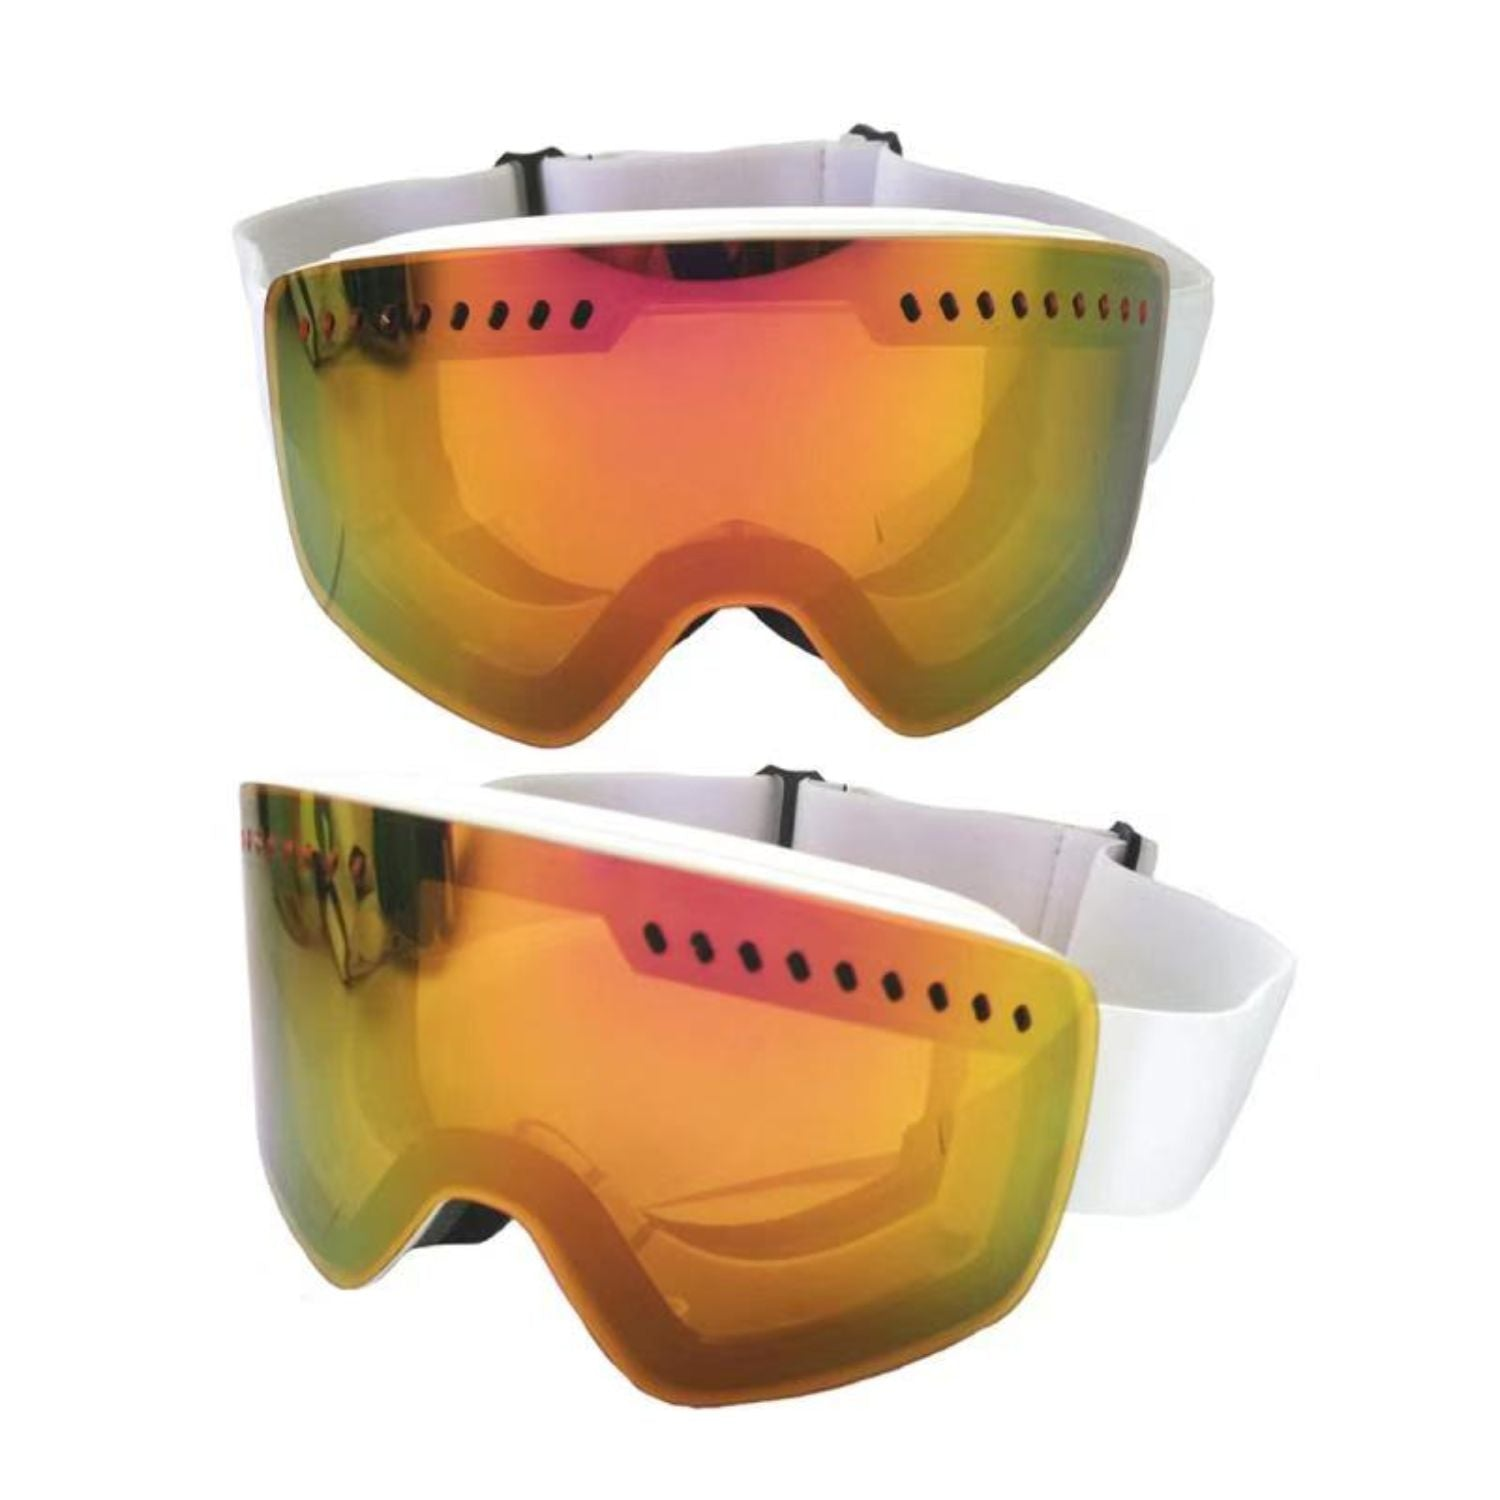 SG01 - Outdoor UV Protection Ski Snowboard Goggles for Men and Women - Iris Fashion Inc. | Wholesale Sunglasses and Glasses